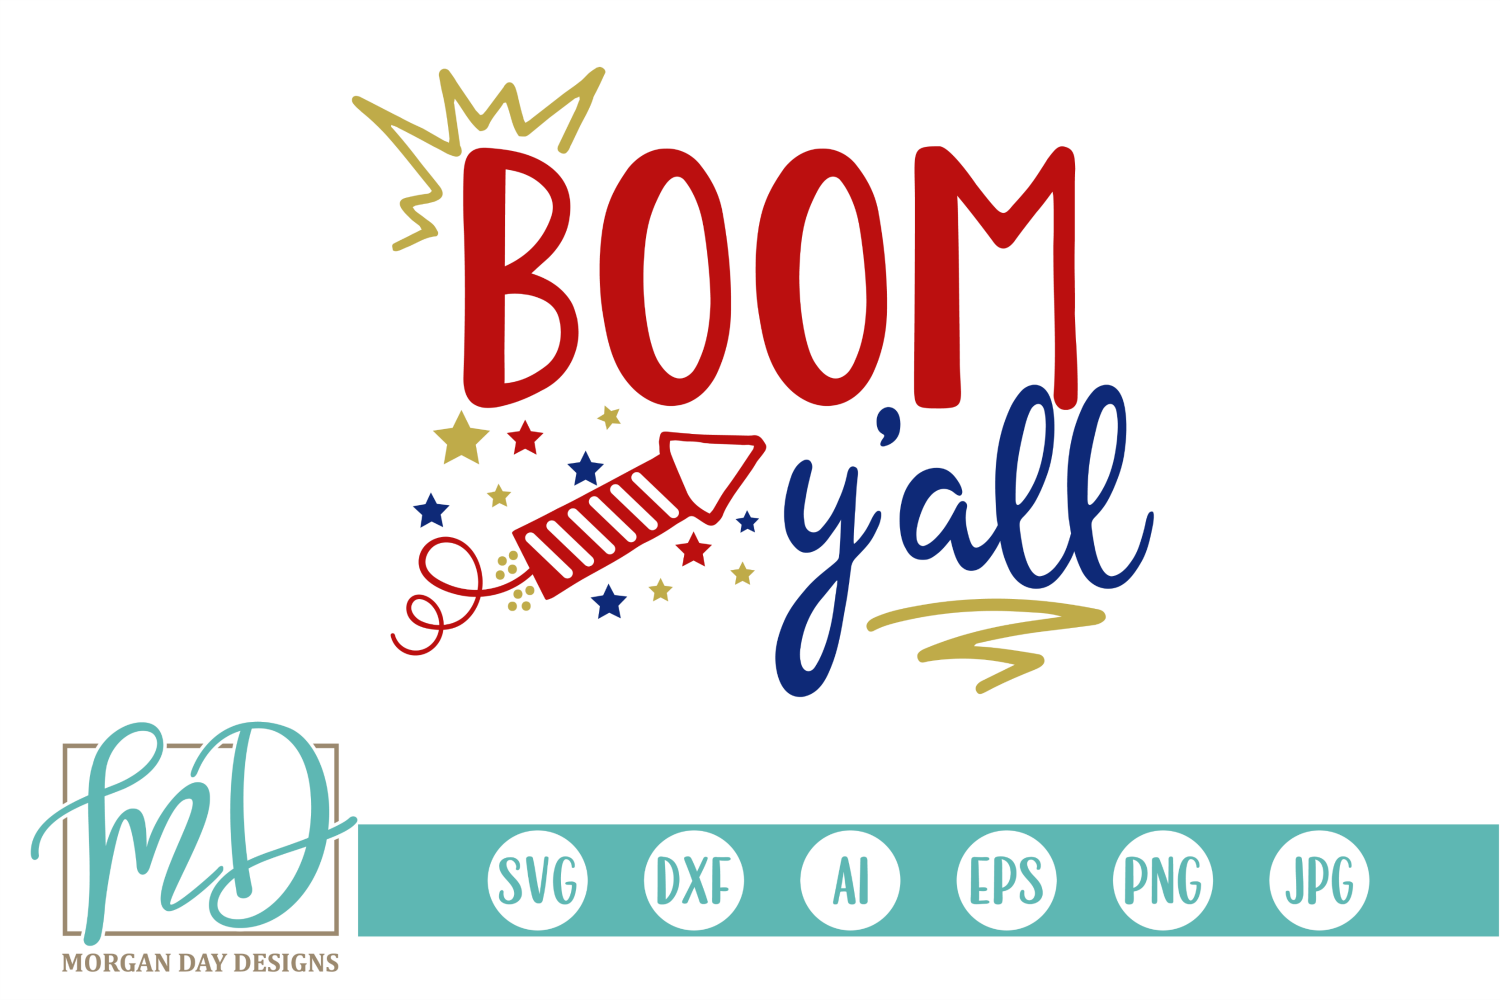 Download Free Boom Y All Svg Graphic By Morgan Day Designs Creative Fabrica for Cricut Explore, Silhouette and other cutting machines.